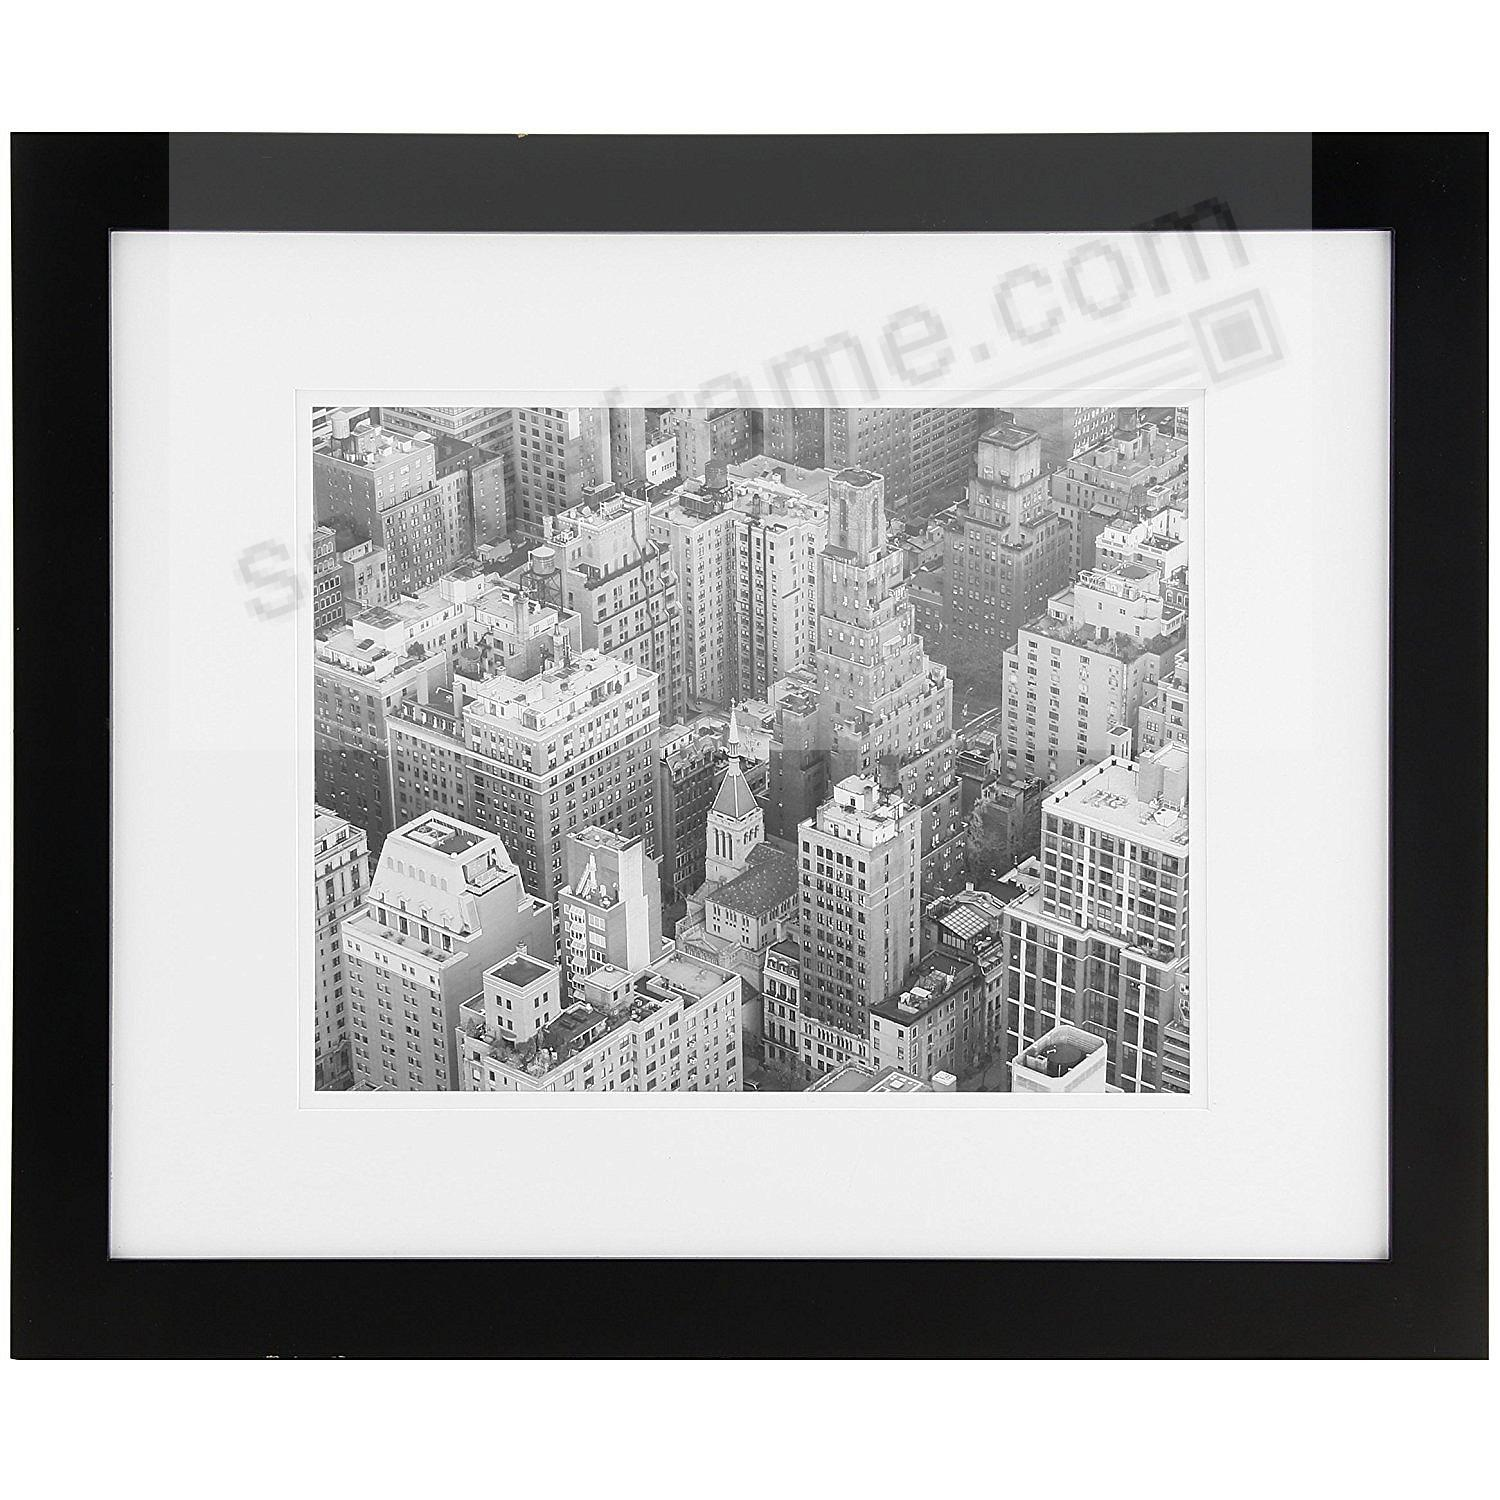 Black Wood Wall Frame matted 16x20/11x14 by Gallery Solutions™